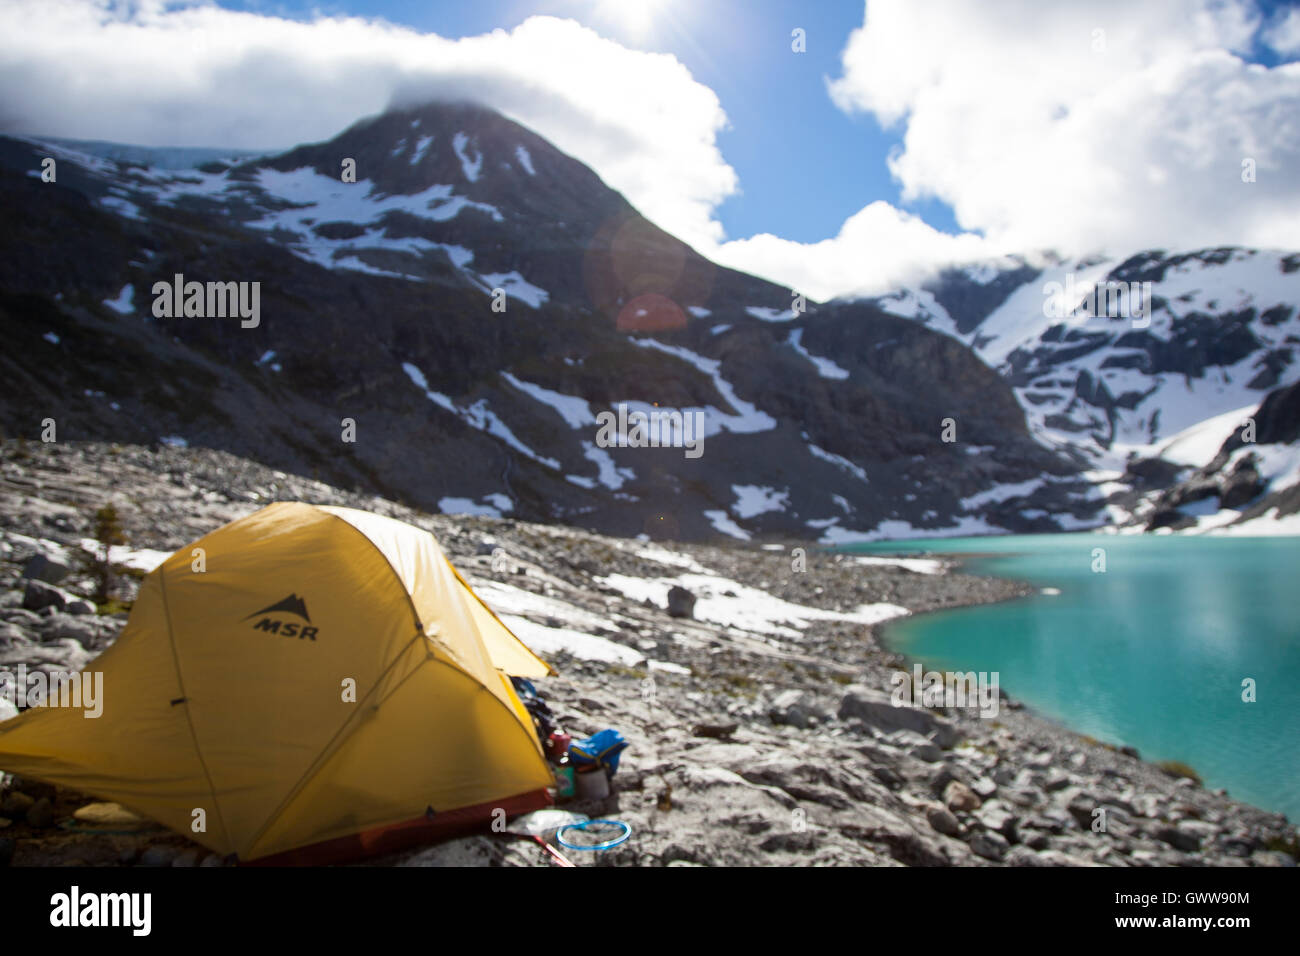 A Backcountry campsite at Wedgmemount Lake, Whistler, British Columbia Canada - Stock Image